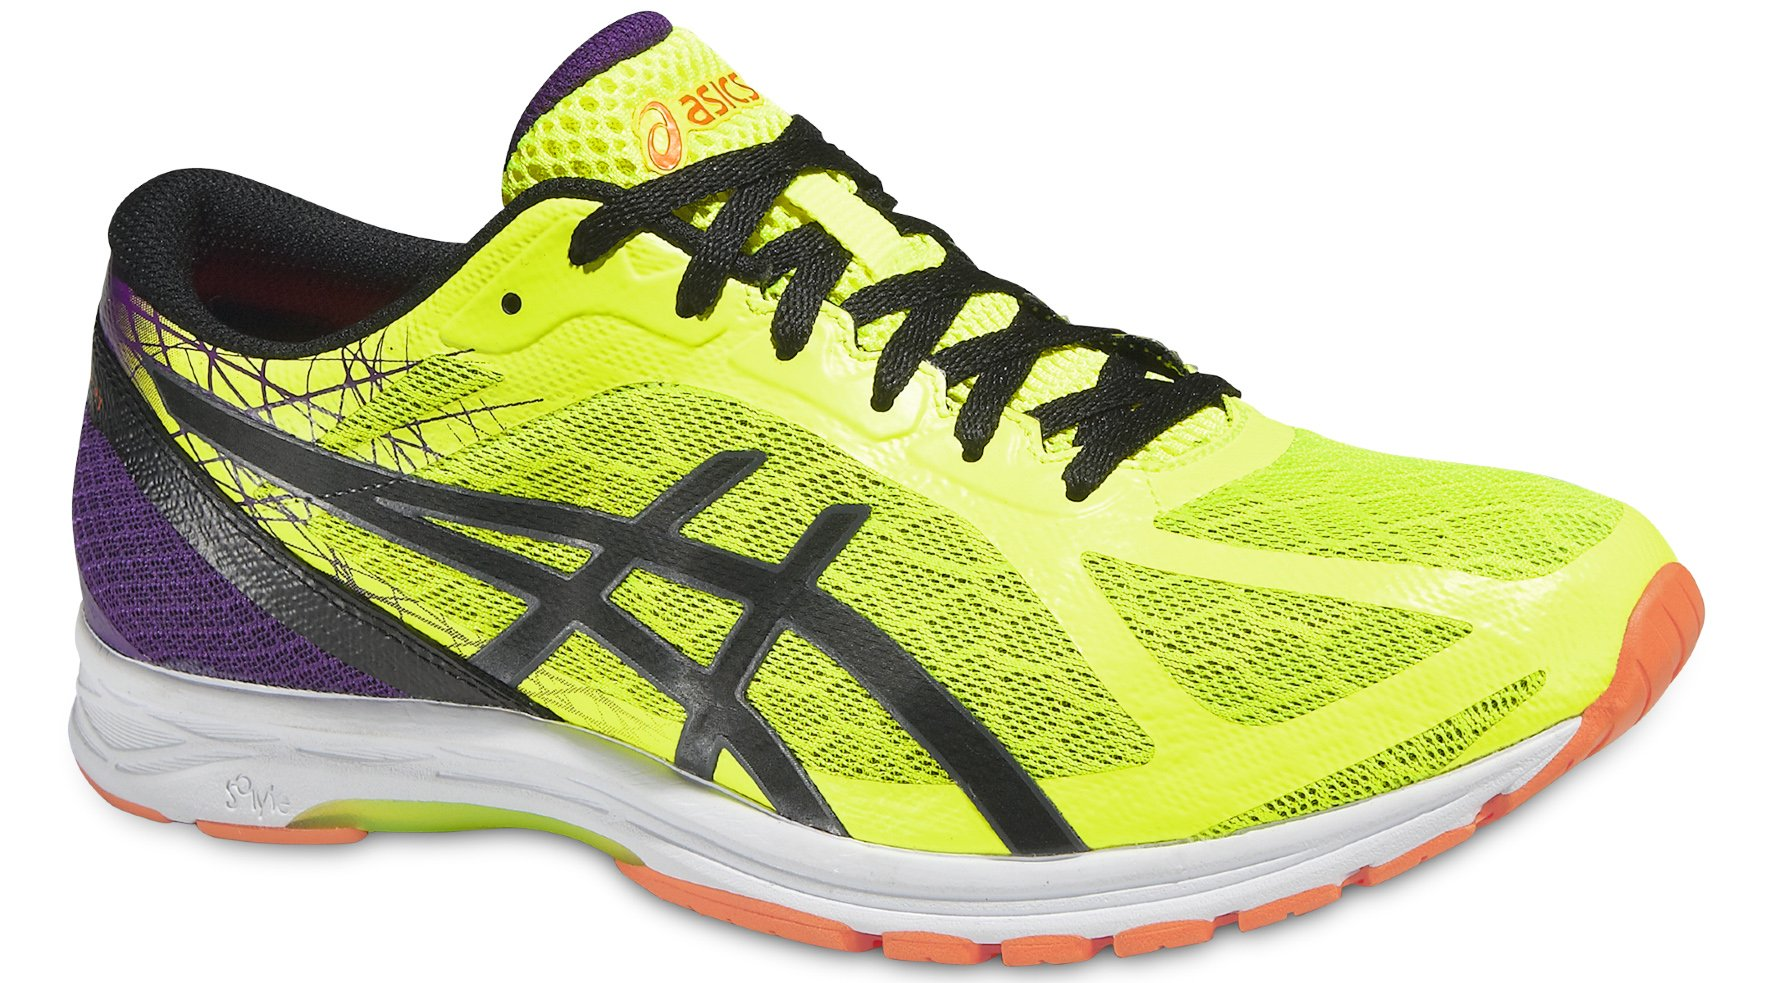 Absolutamente nostalgia maravilloso  Running shoes Asics GEL-DS RACER 11 - Top4Running.com